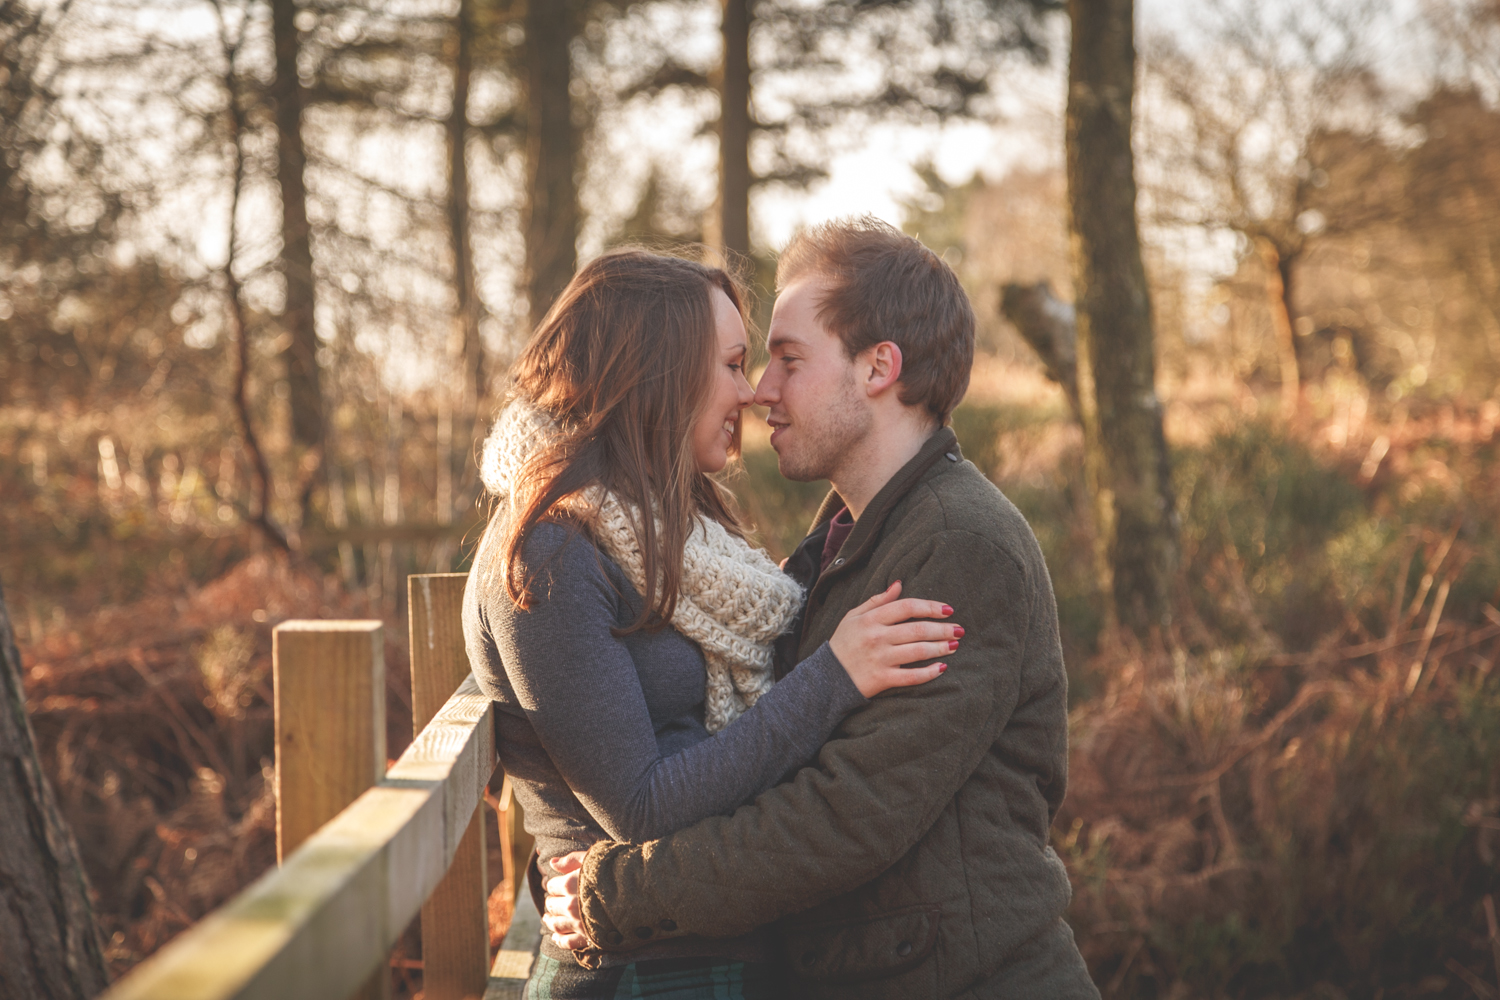 Engagement and Couple Photography by Ross Jukes